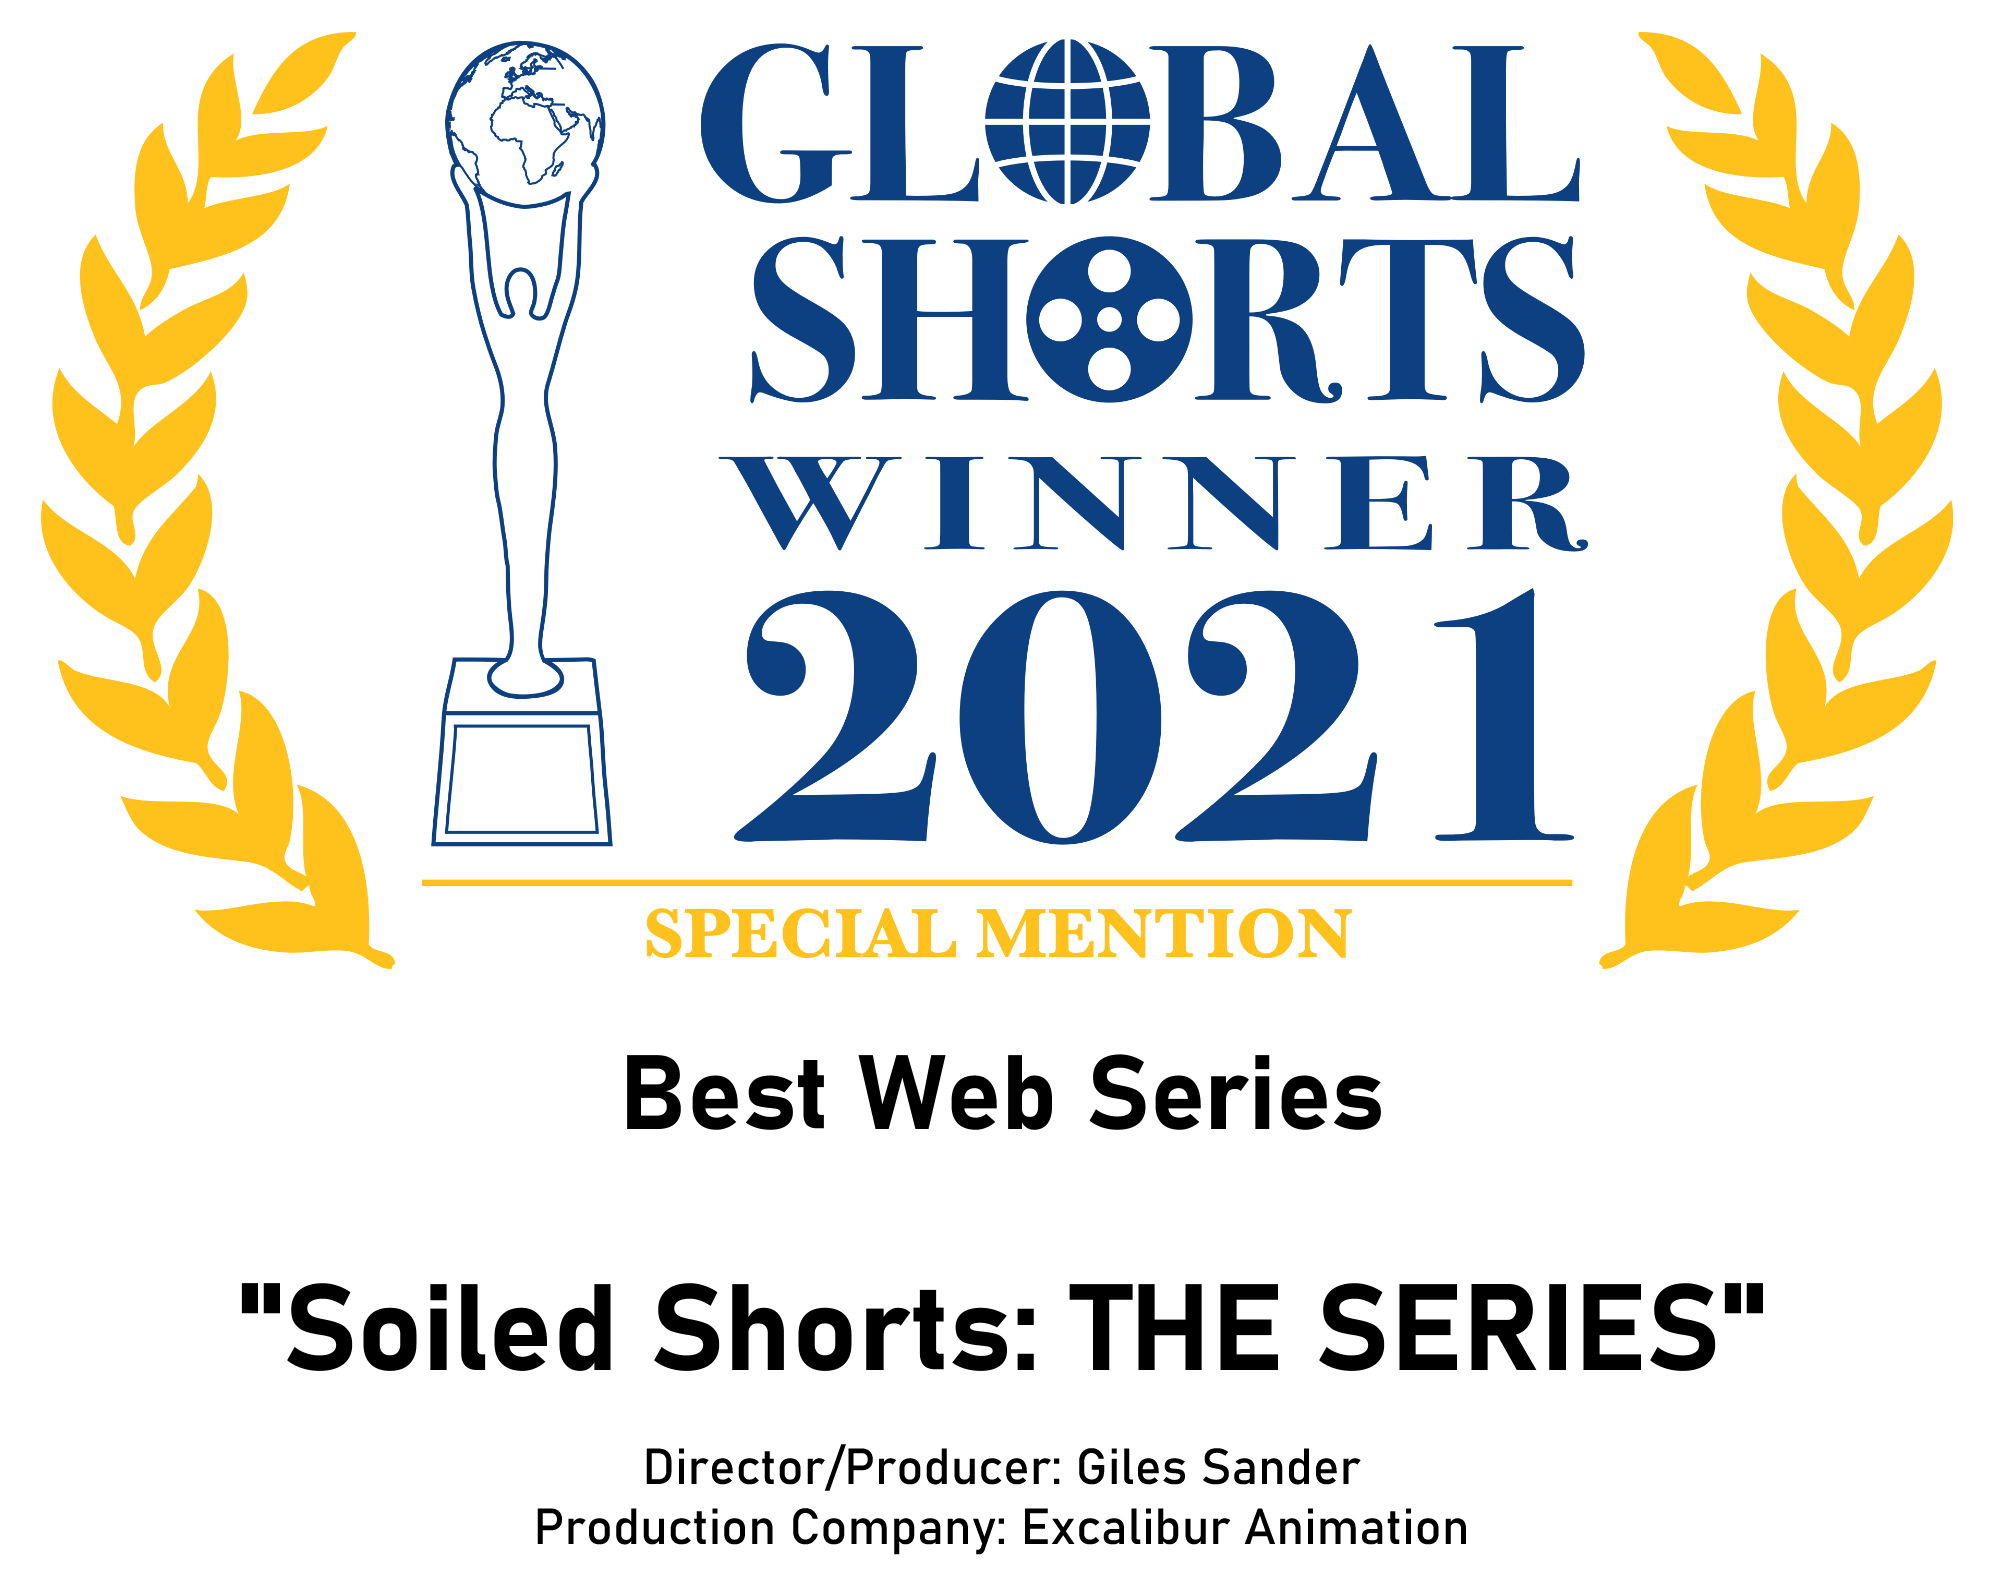 Winner - Global Shorts 2021 Special Mention